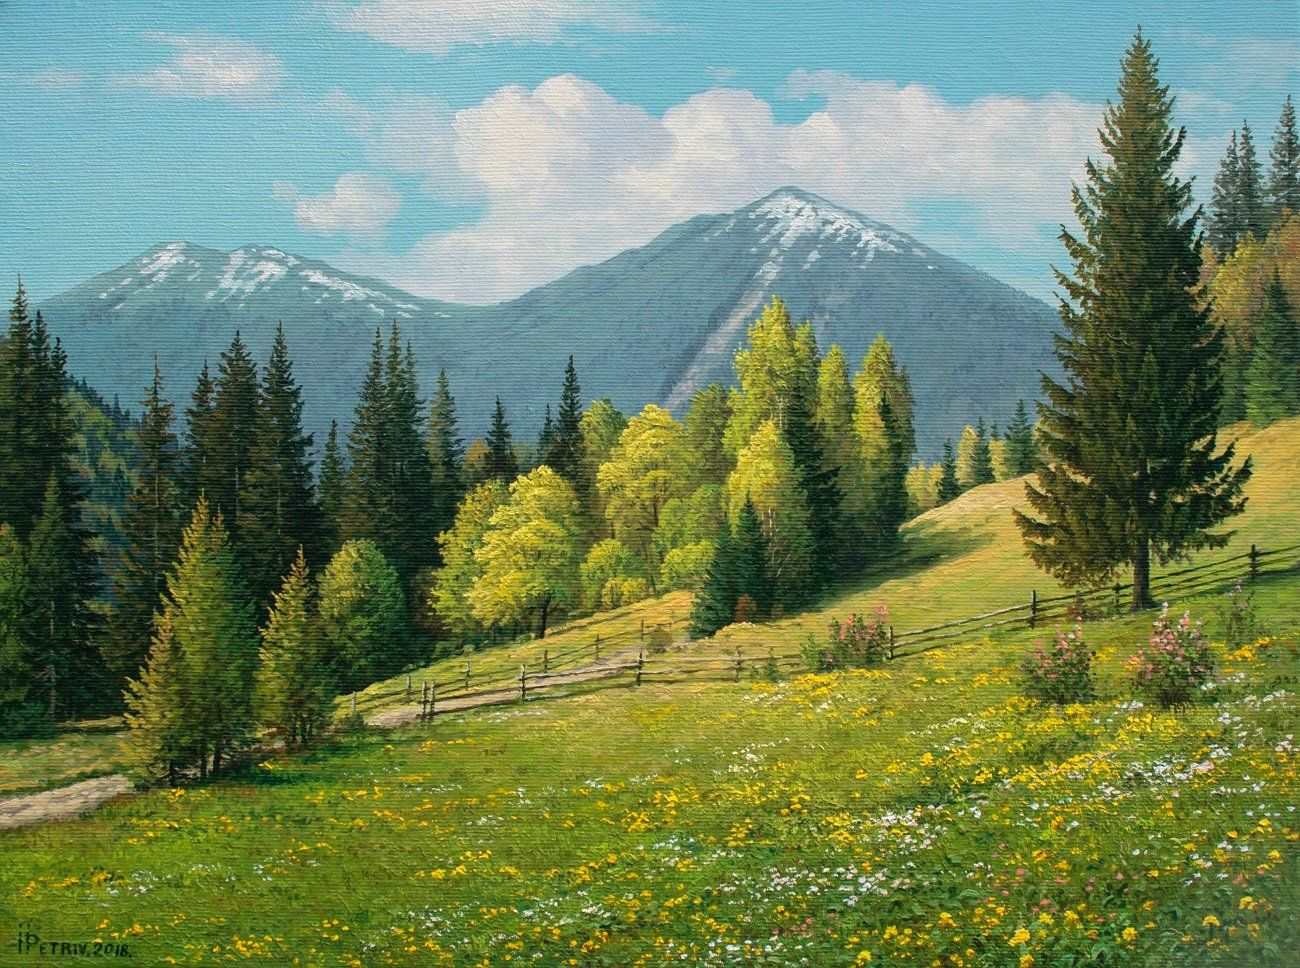 Oil Painting Landscape Oil Painting Mountain Oil Painting Large Landscape Painting Oil Painting Landscape Landscape Oil Paintings Mountain